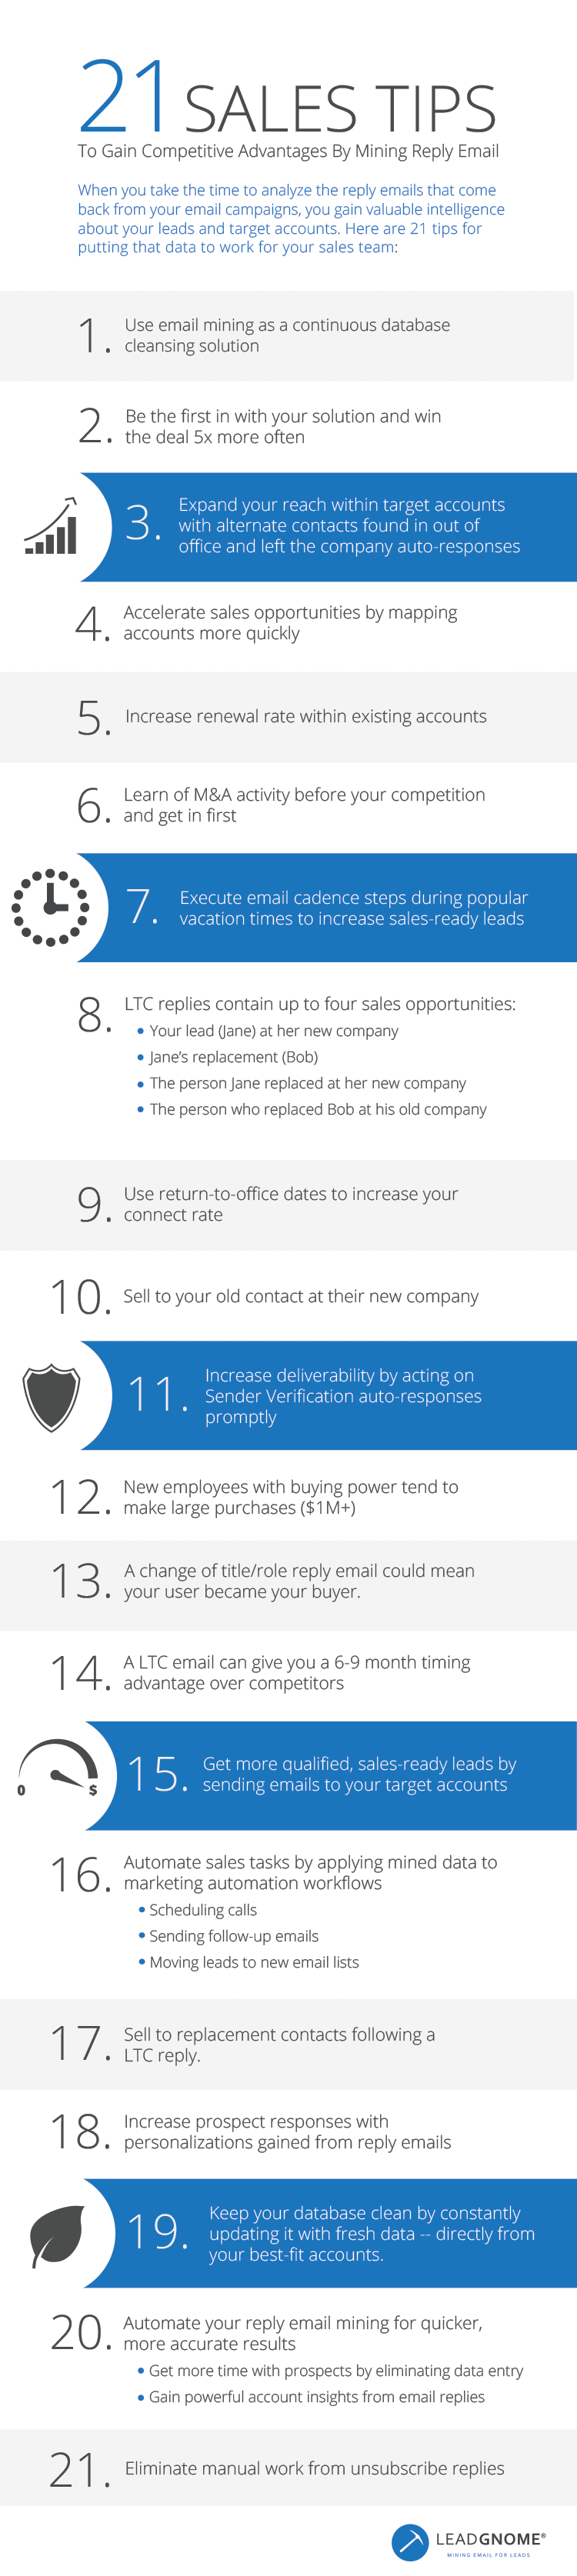 sales-tips-Infographic-final